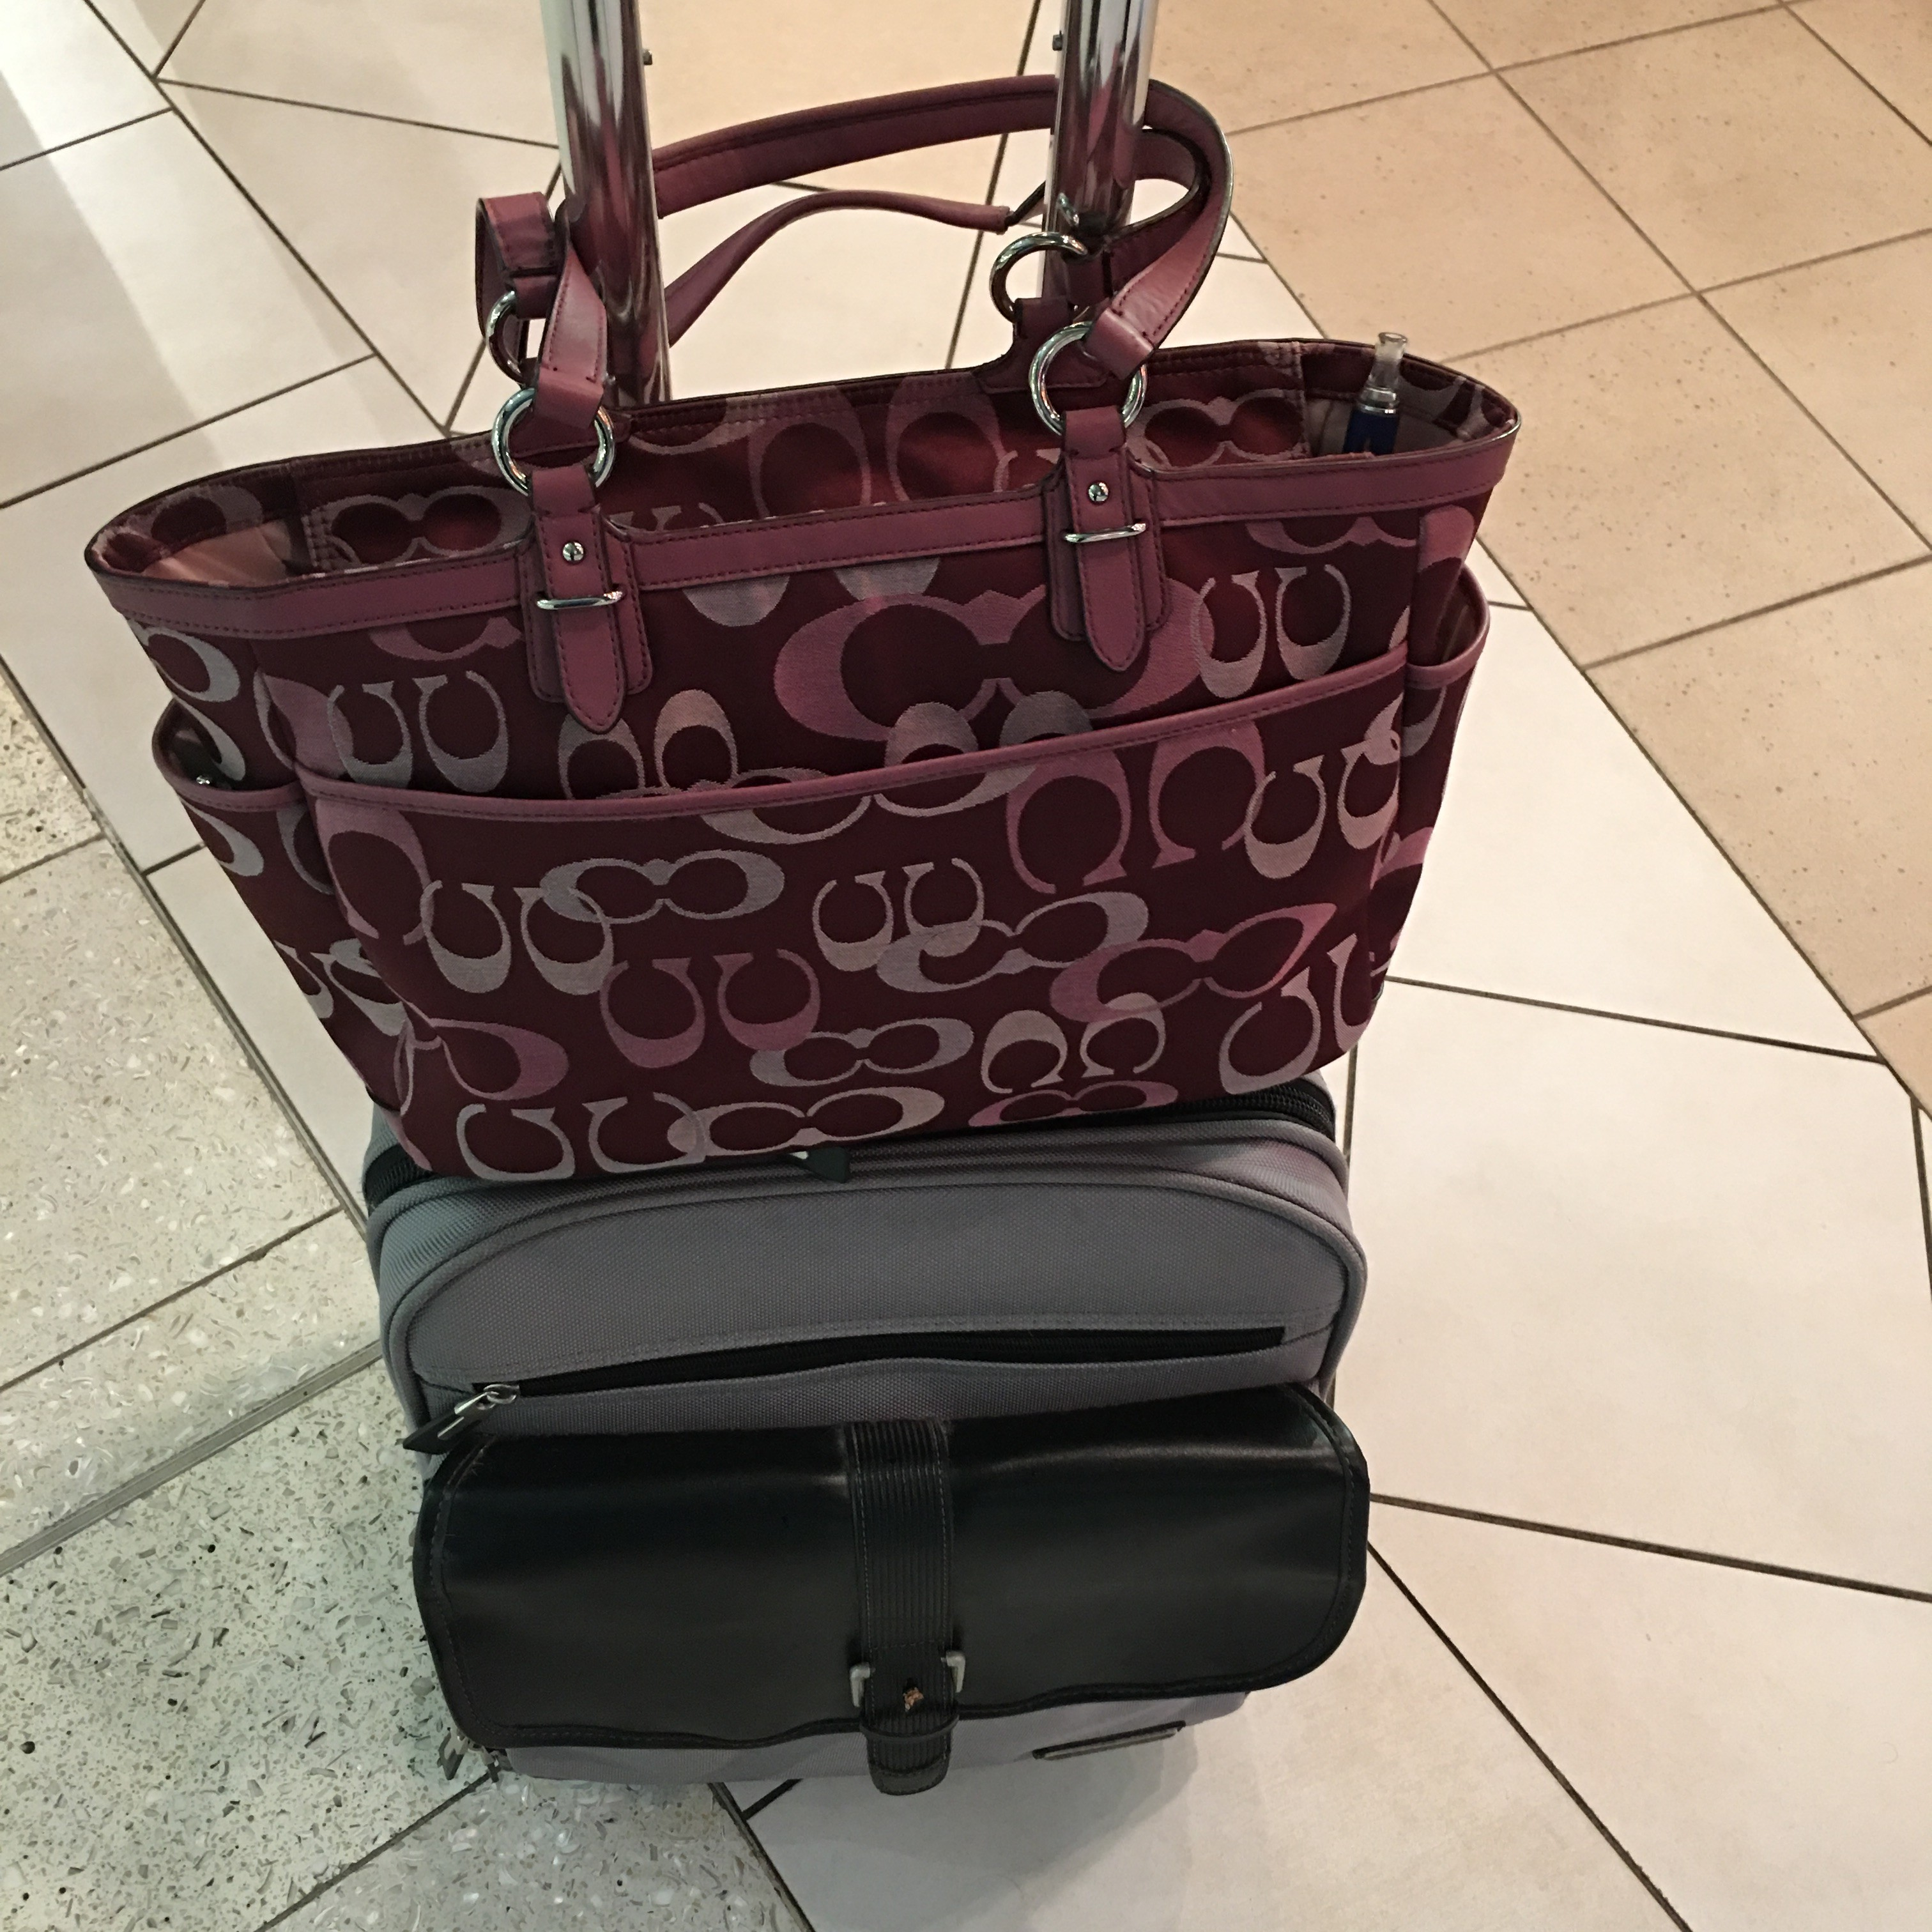 Image of purse and rolling carry-on